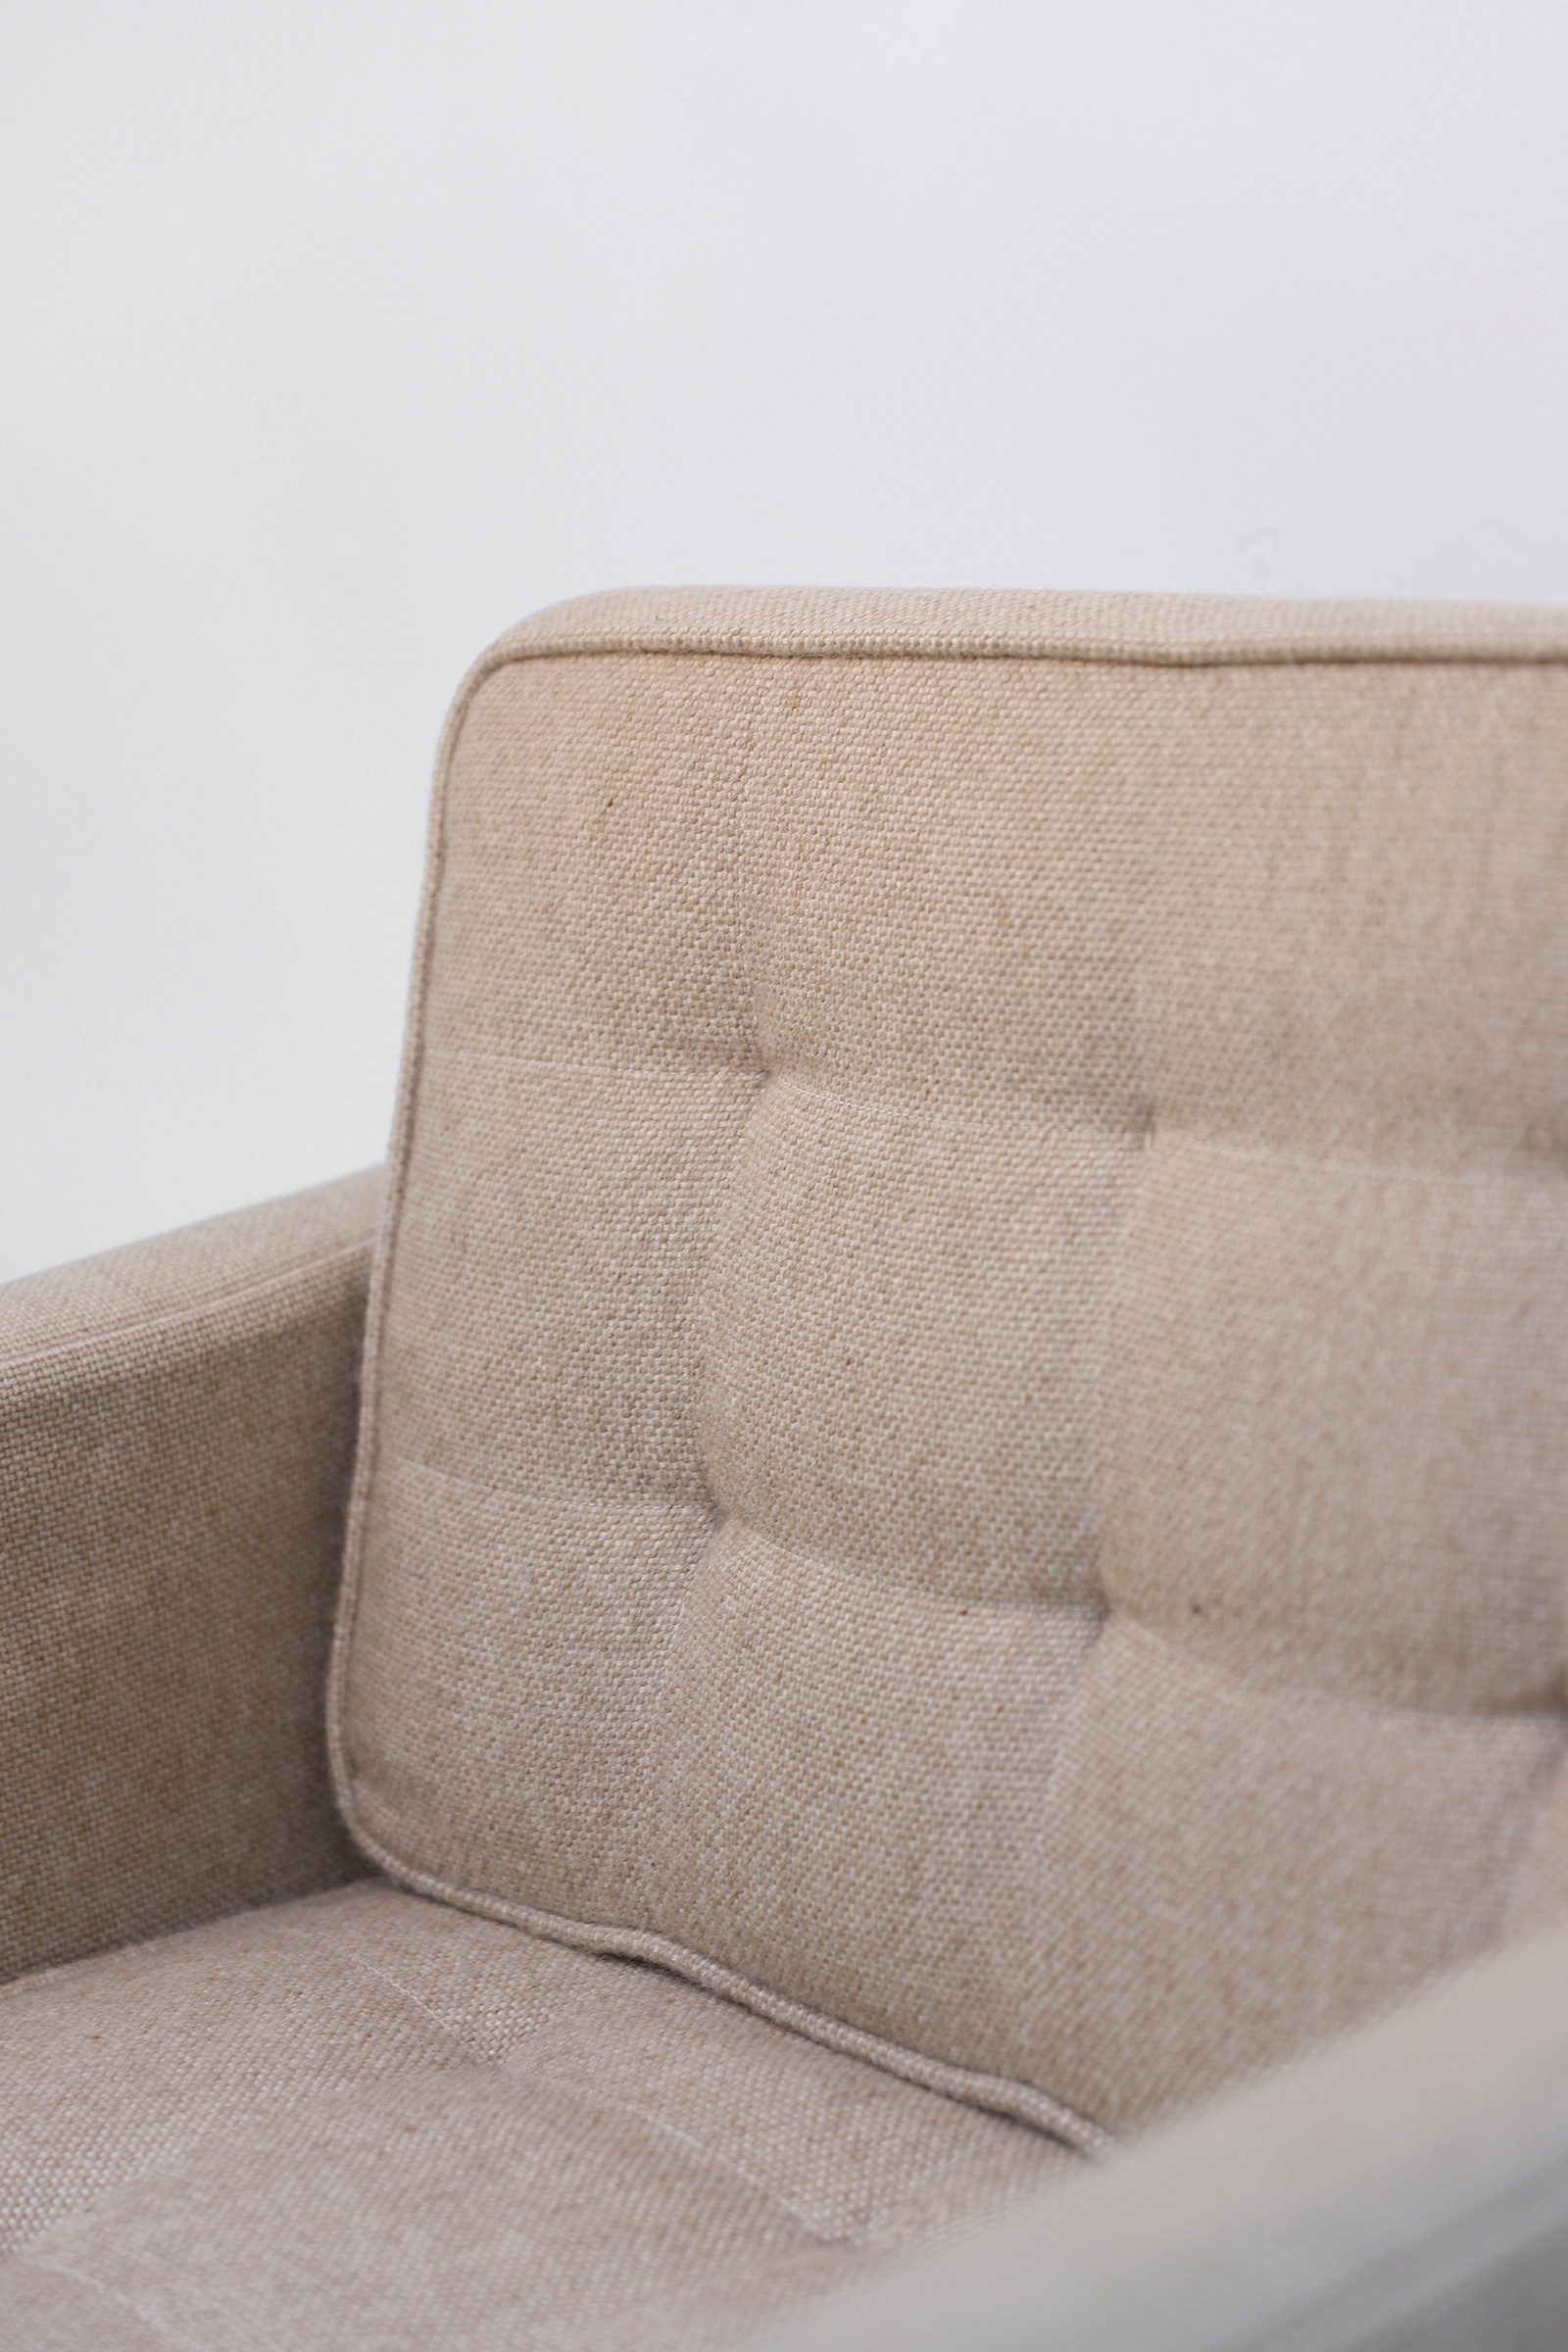 Florence Knoll Arm Chairsimage 8